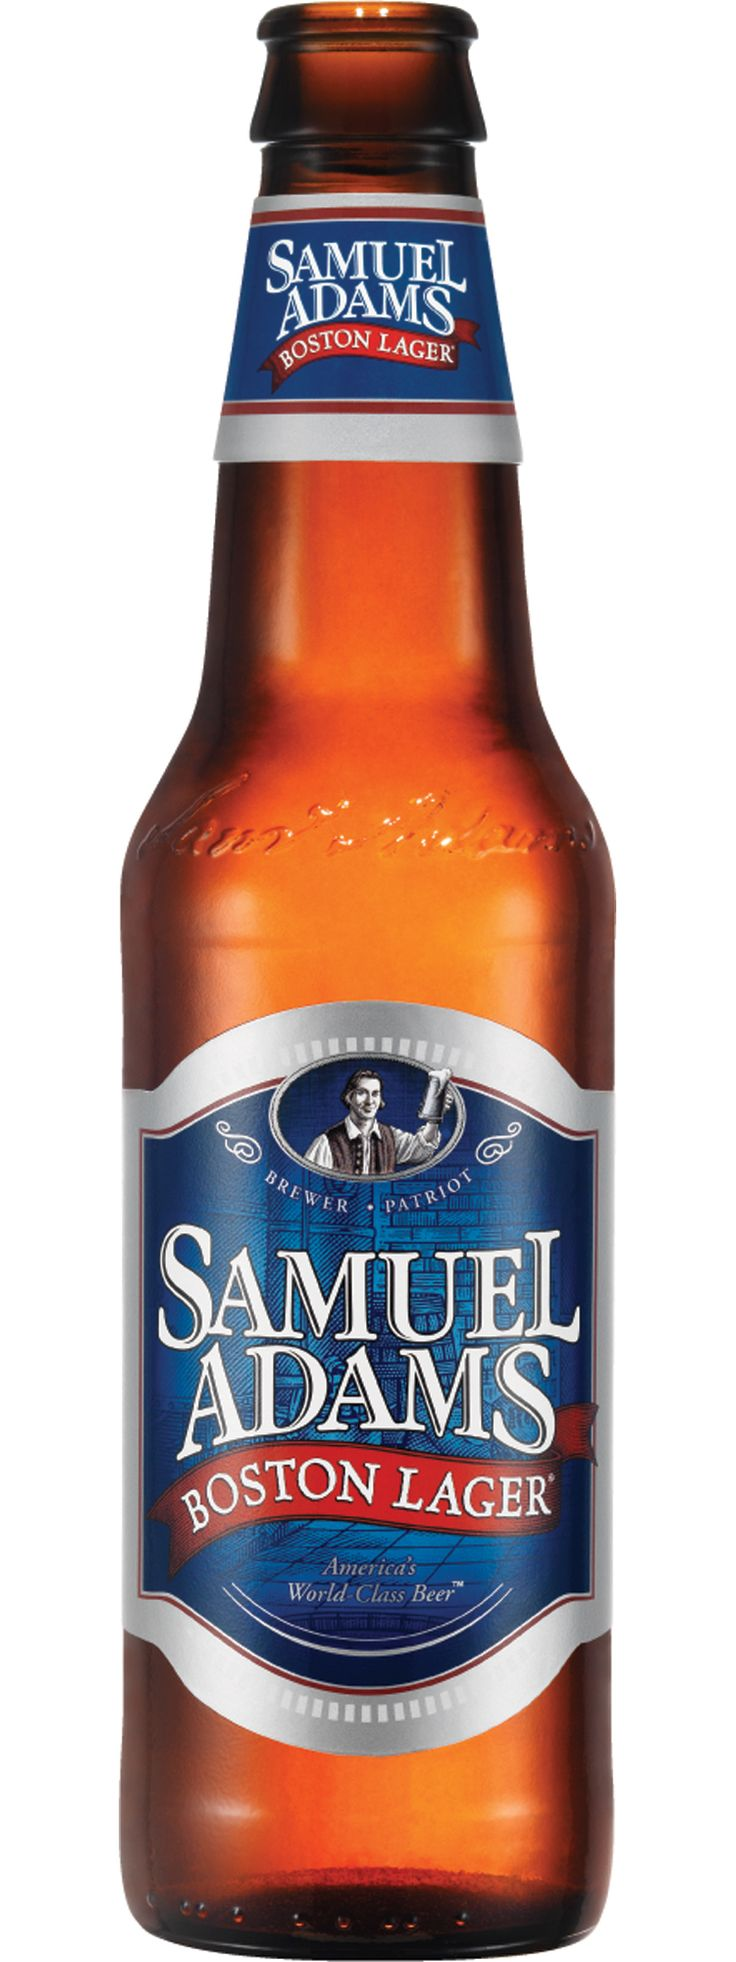 Samuel Adams Boston Lager, United States